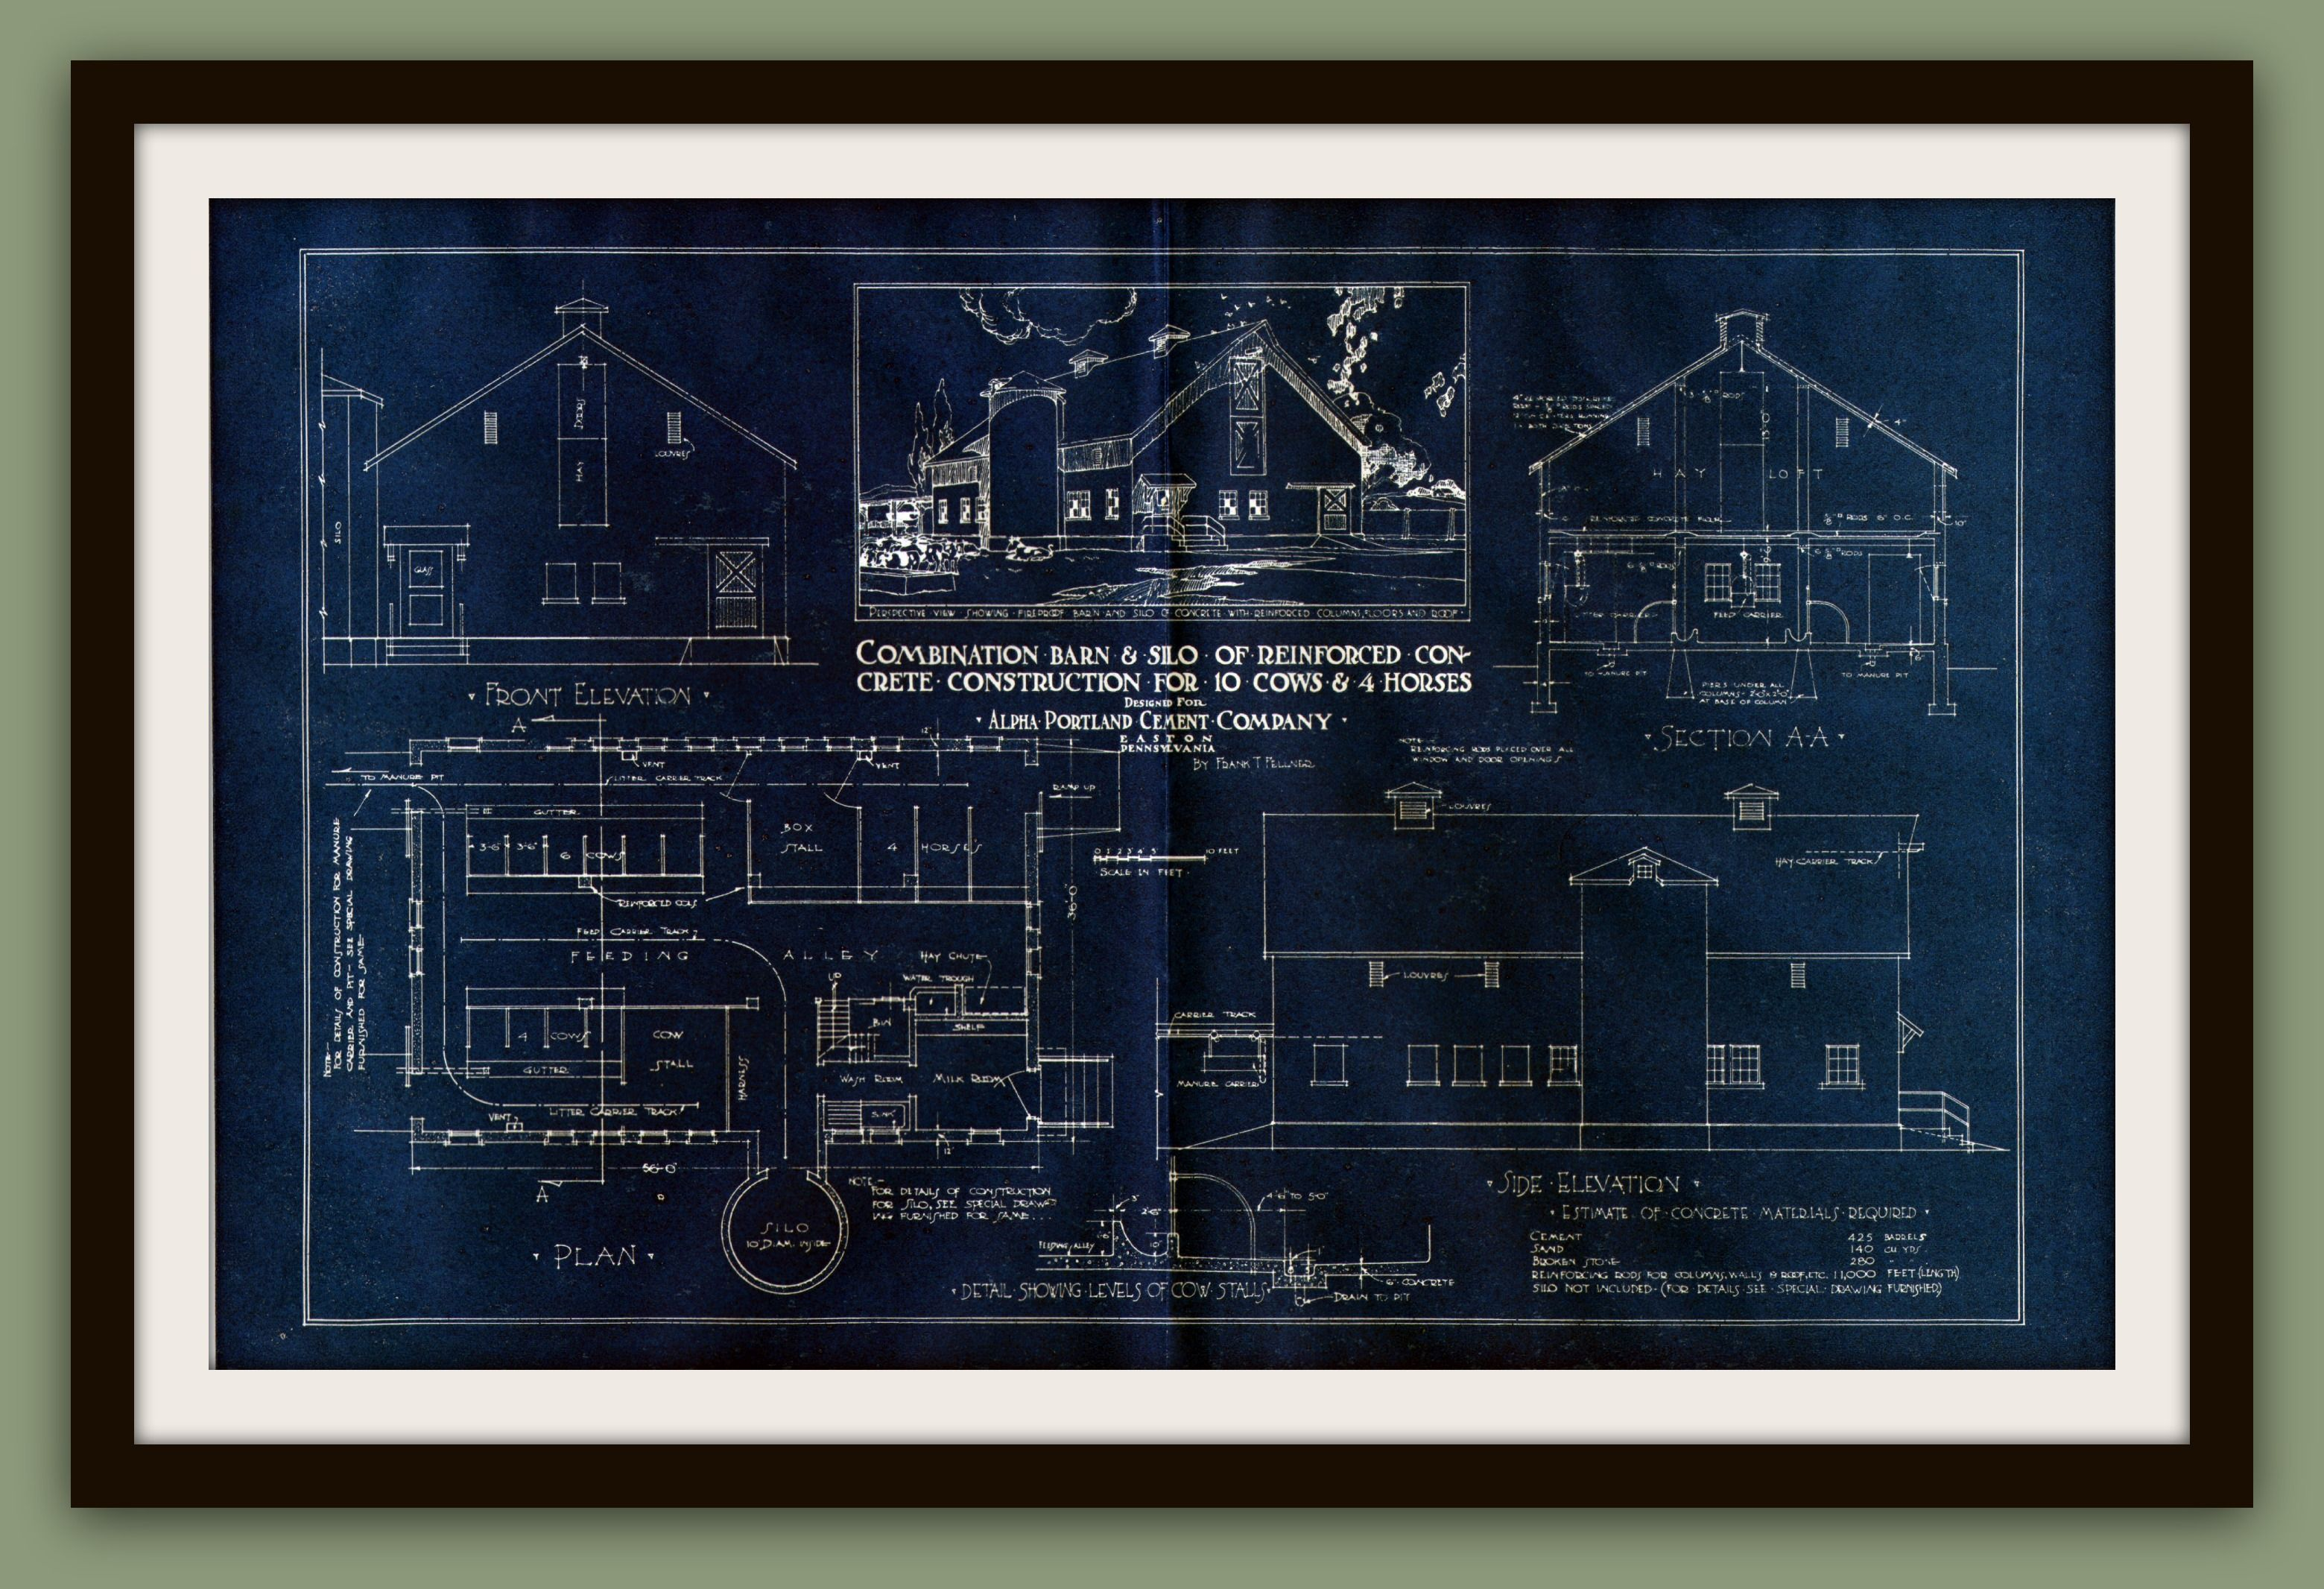 Vintage farmhouse silo blueprint blueprint art pinterest combination barn and silo vintage blueprint malvernweather Image collections